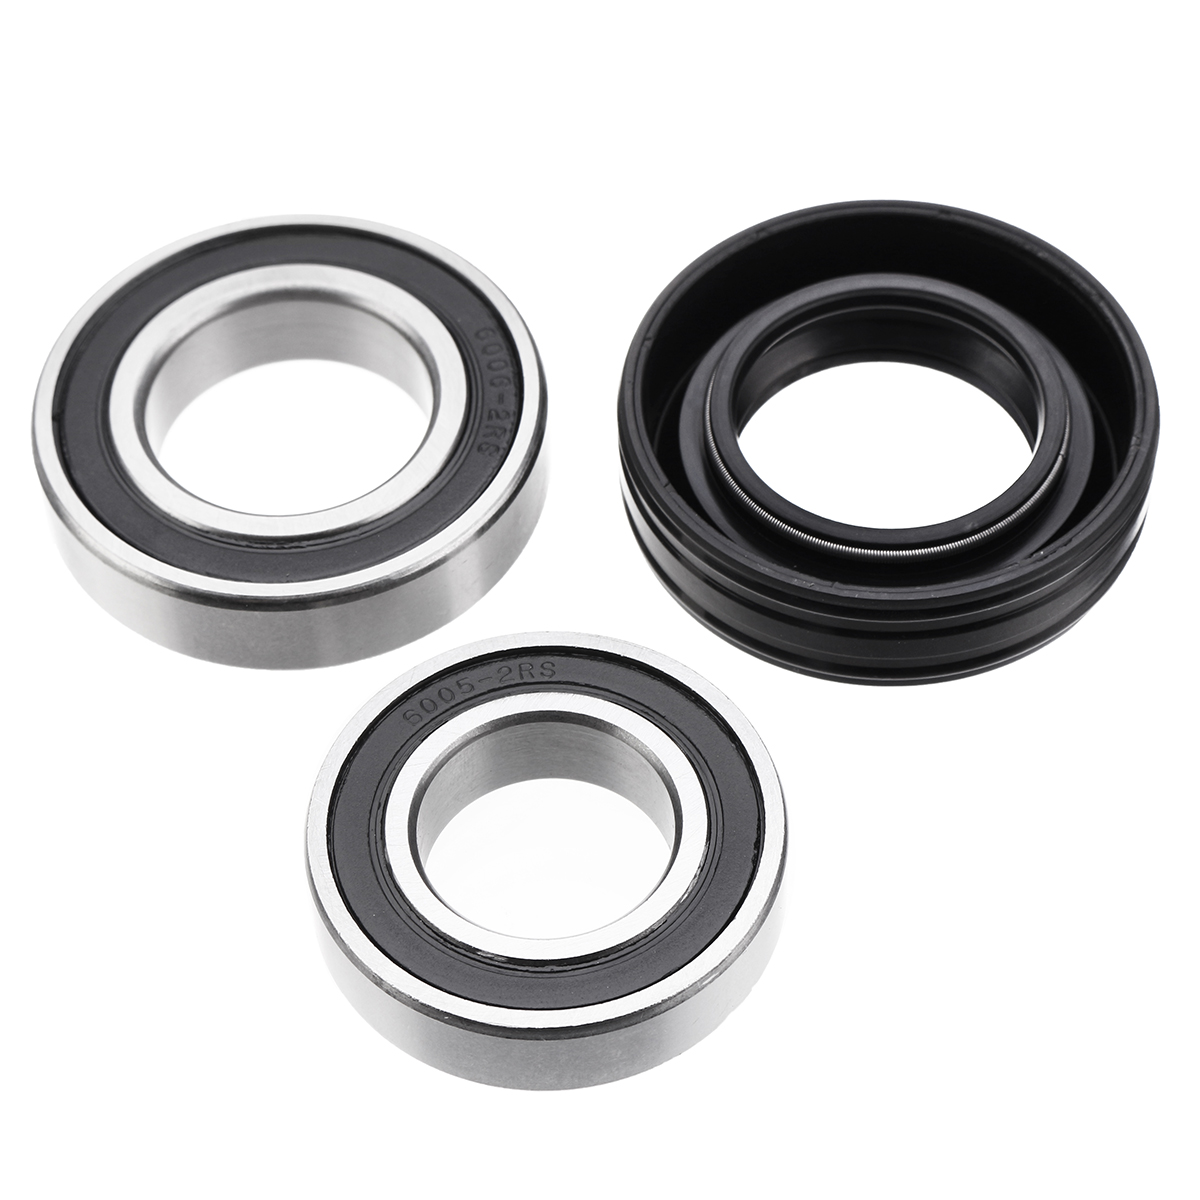 W10435302 Washer Tub Bearings and Seal Kit For Kenmore Maytag Whirlpool